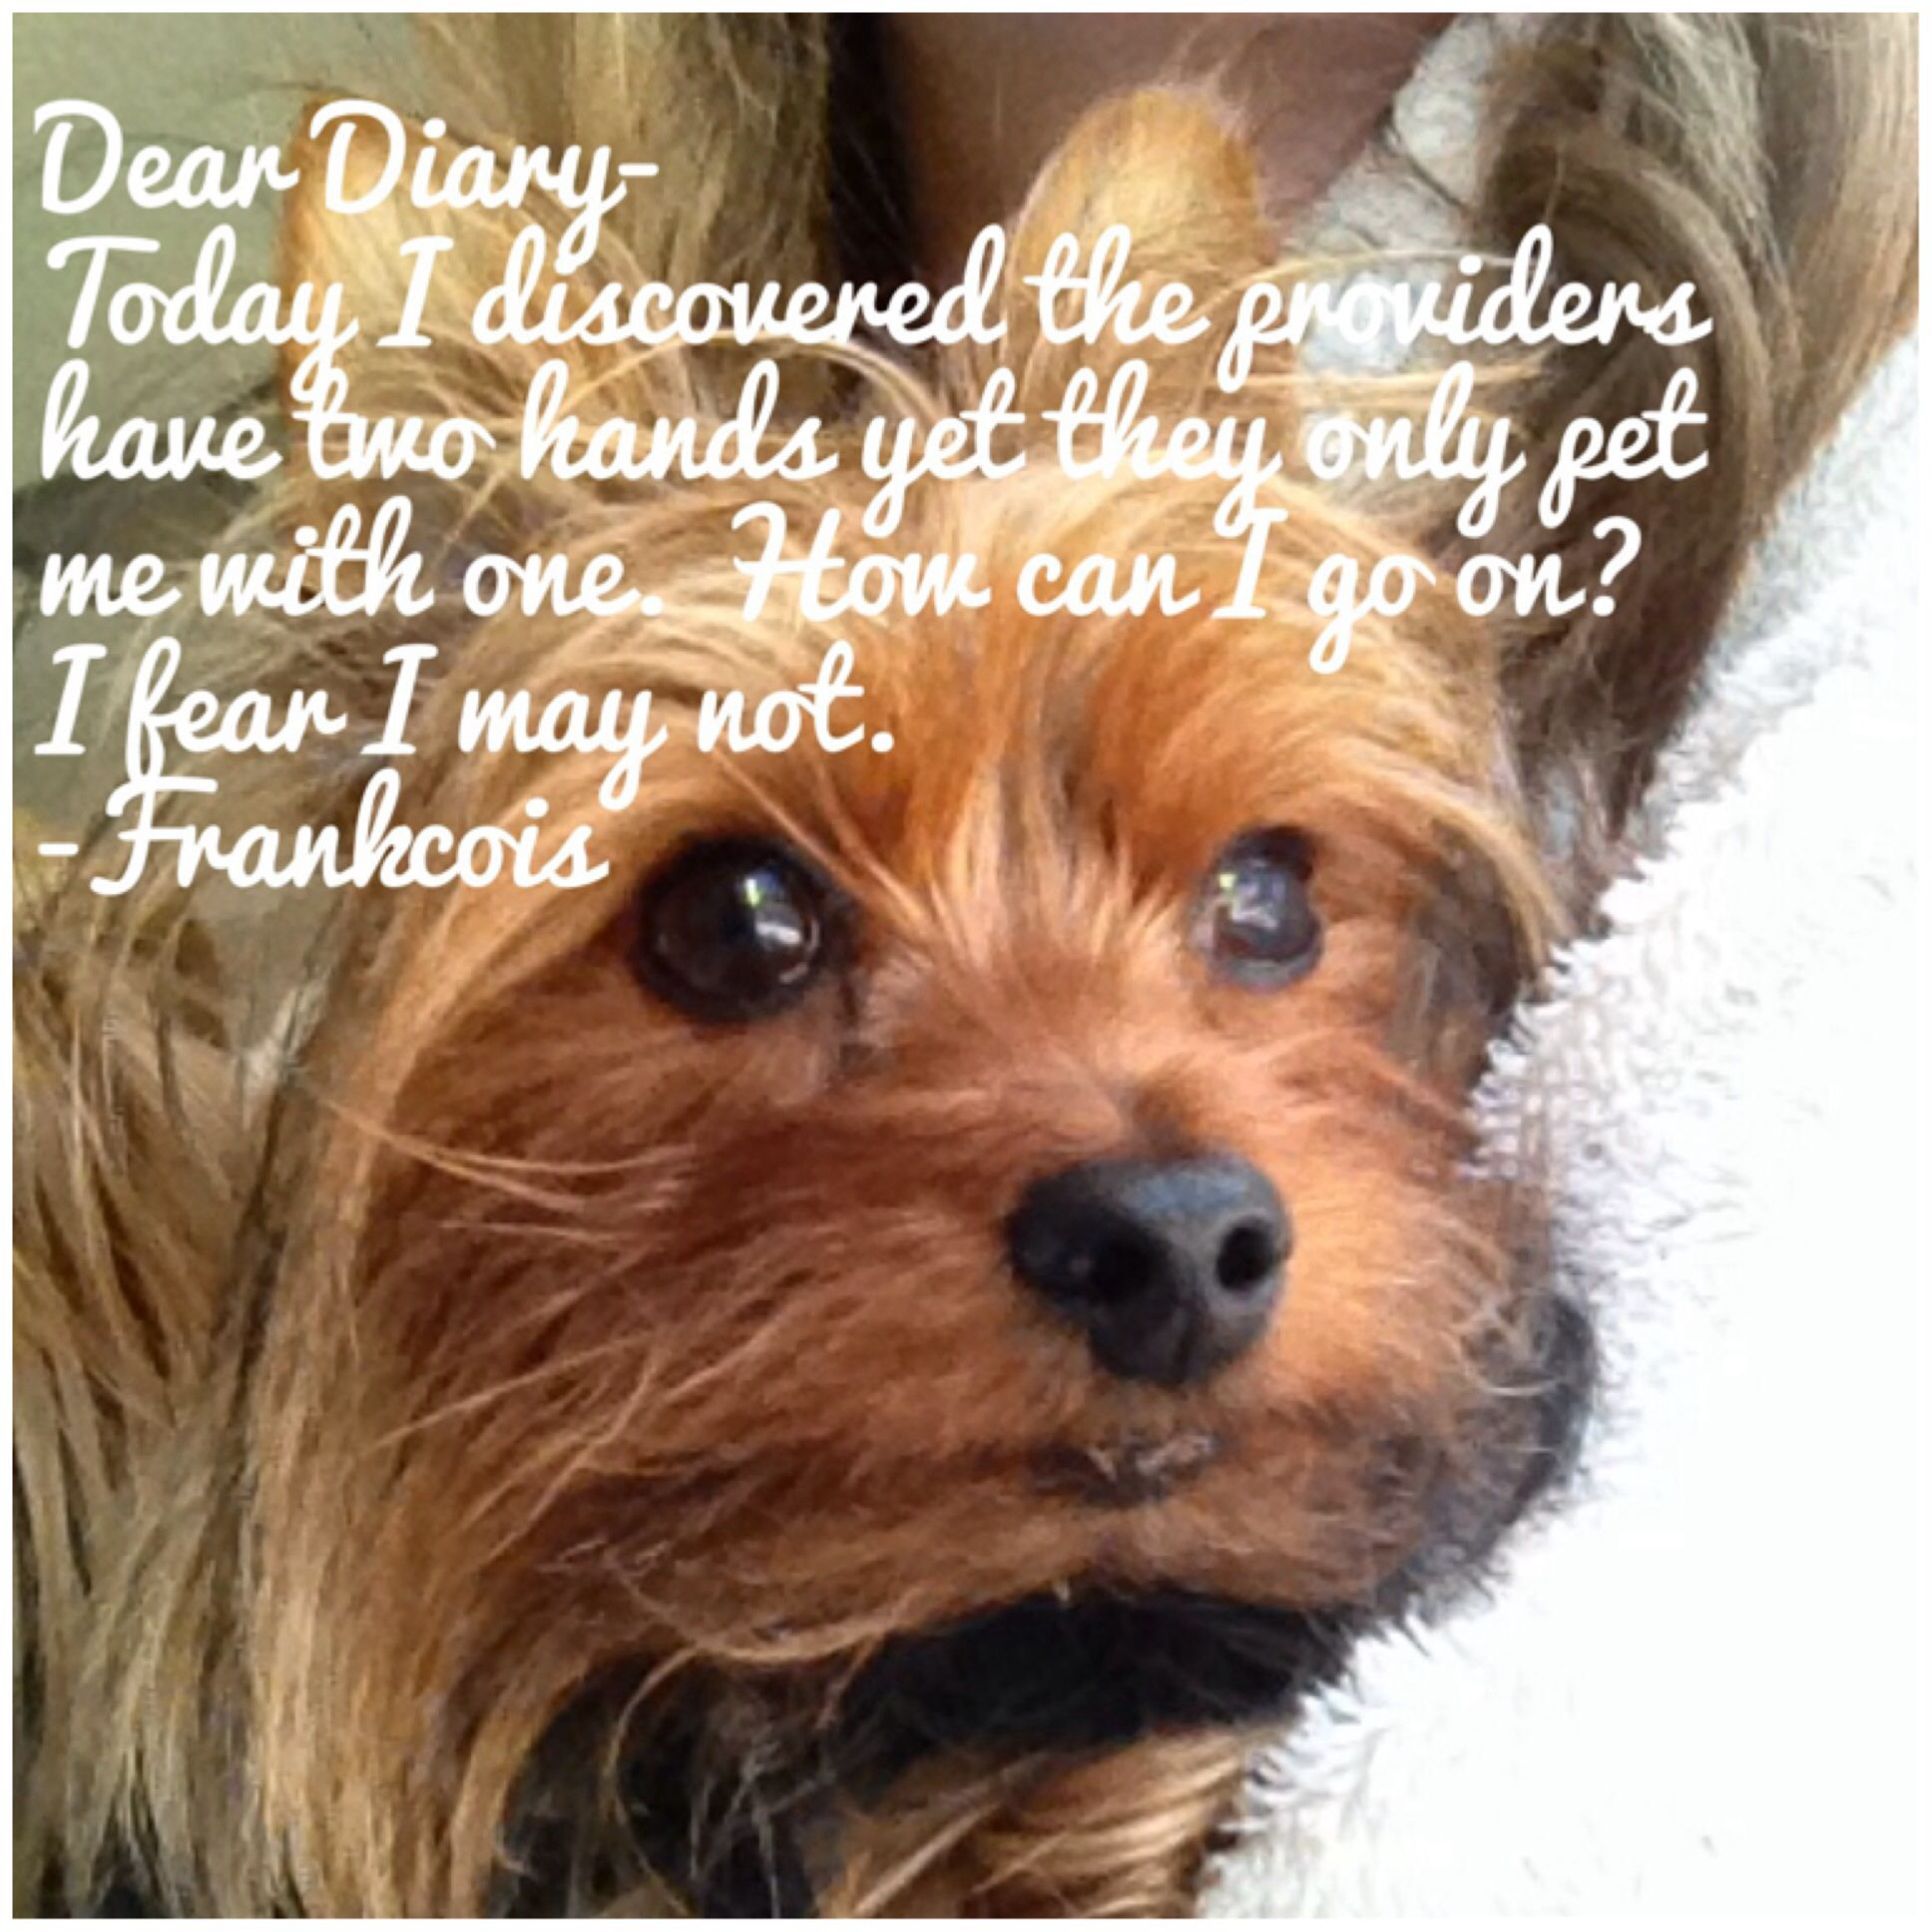 Frankcois inner thoughts. Dear Diary yorkie style. Dog